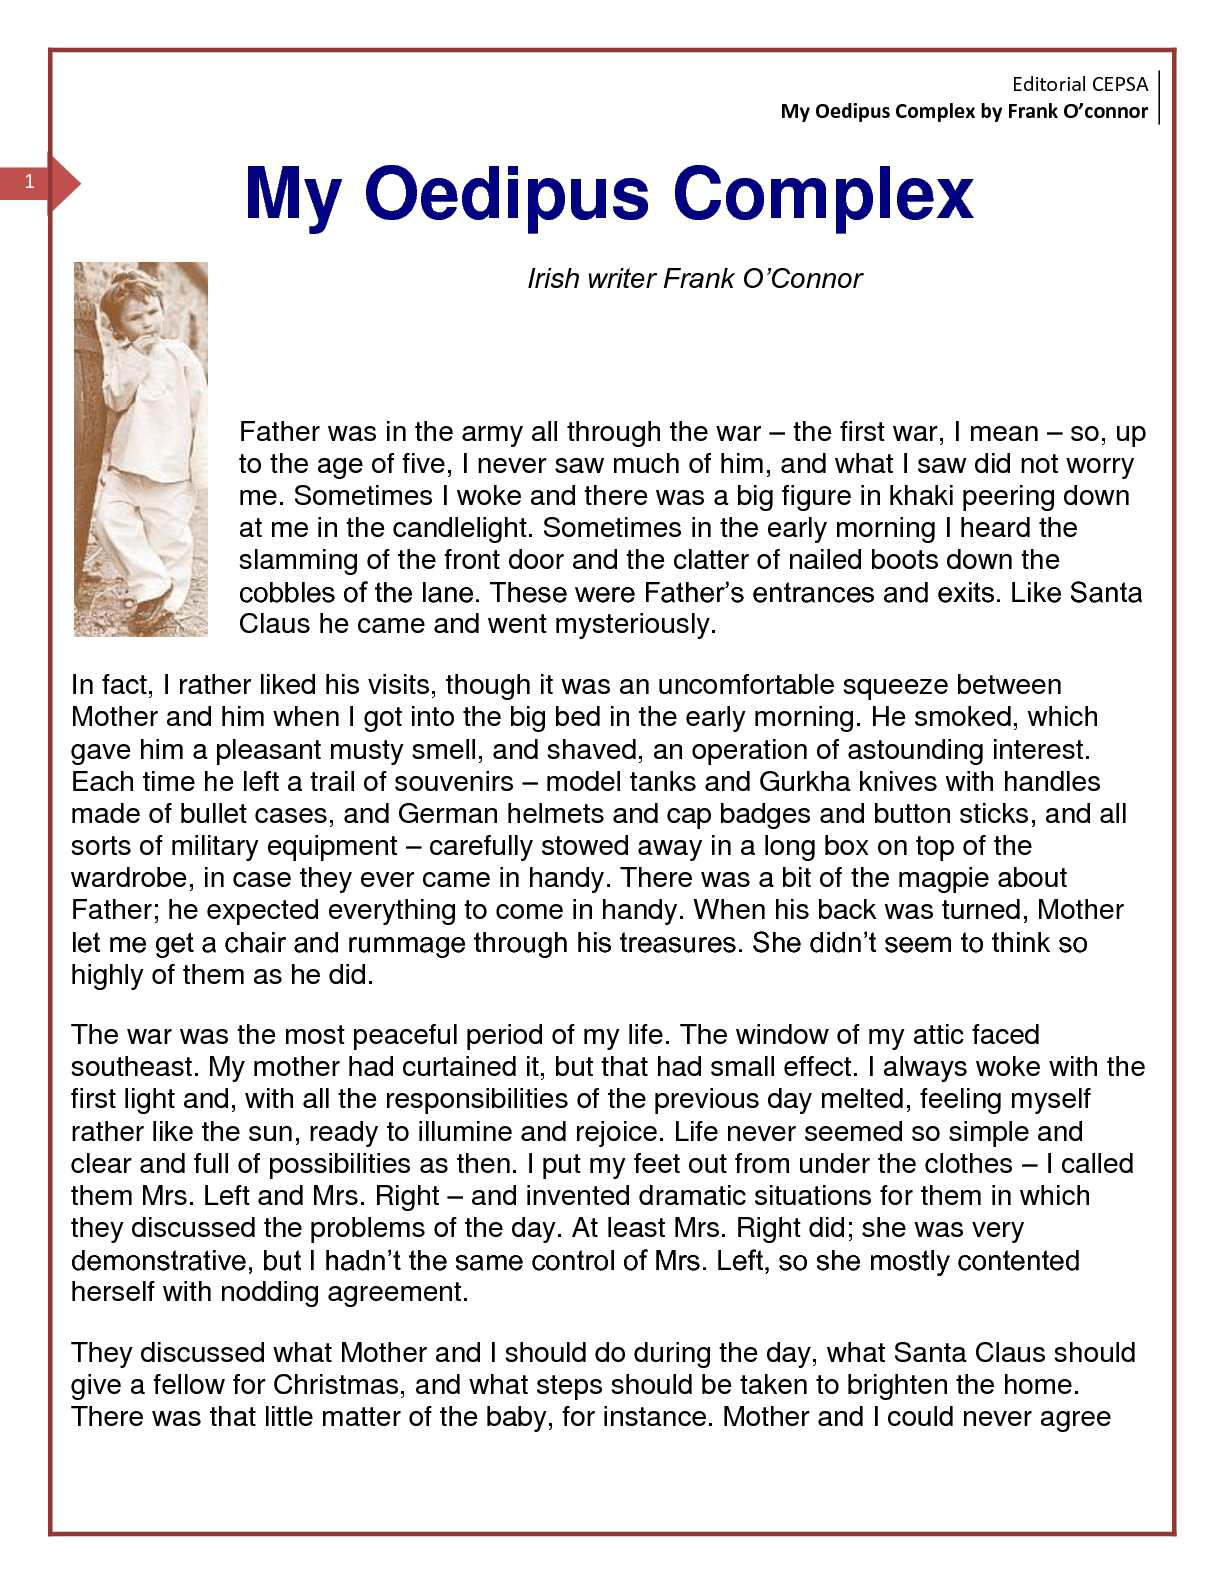 a review of frank oconnors short story my oedipus complex